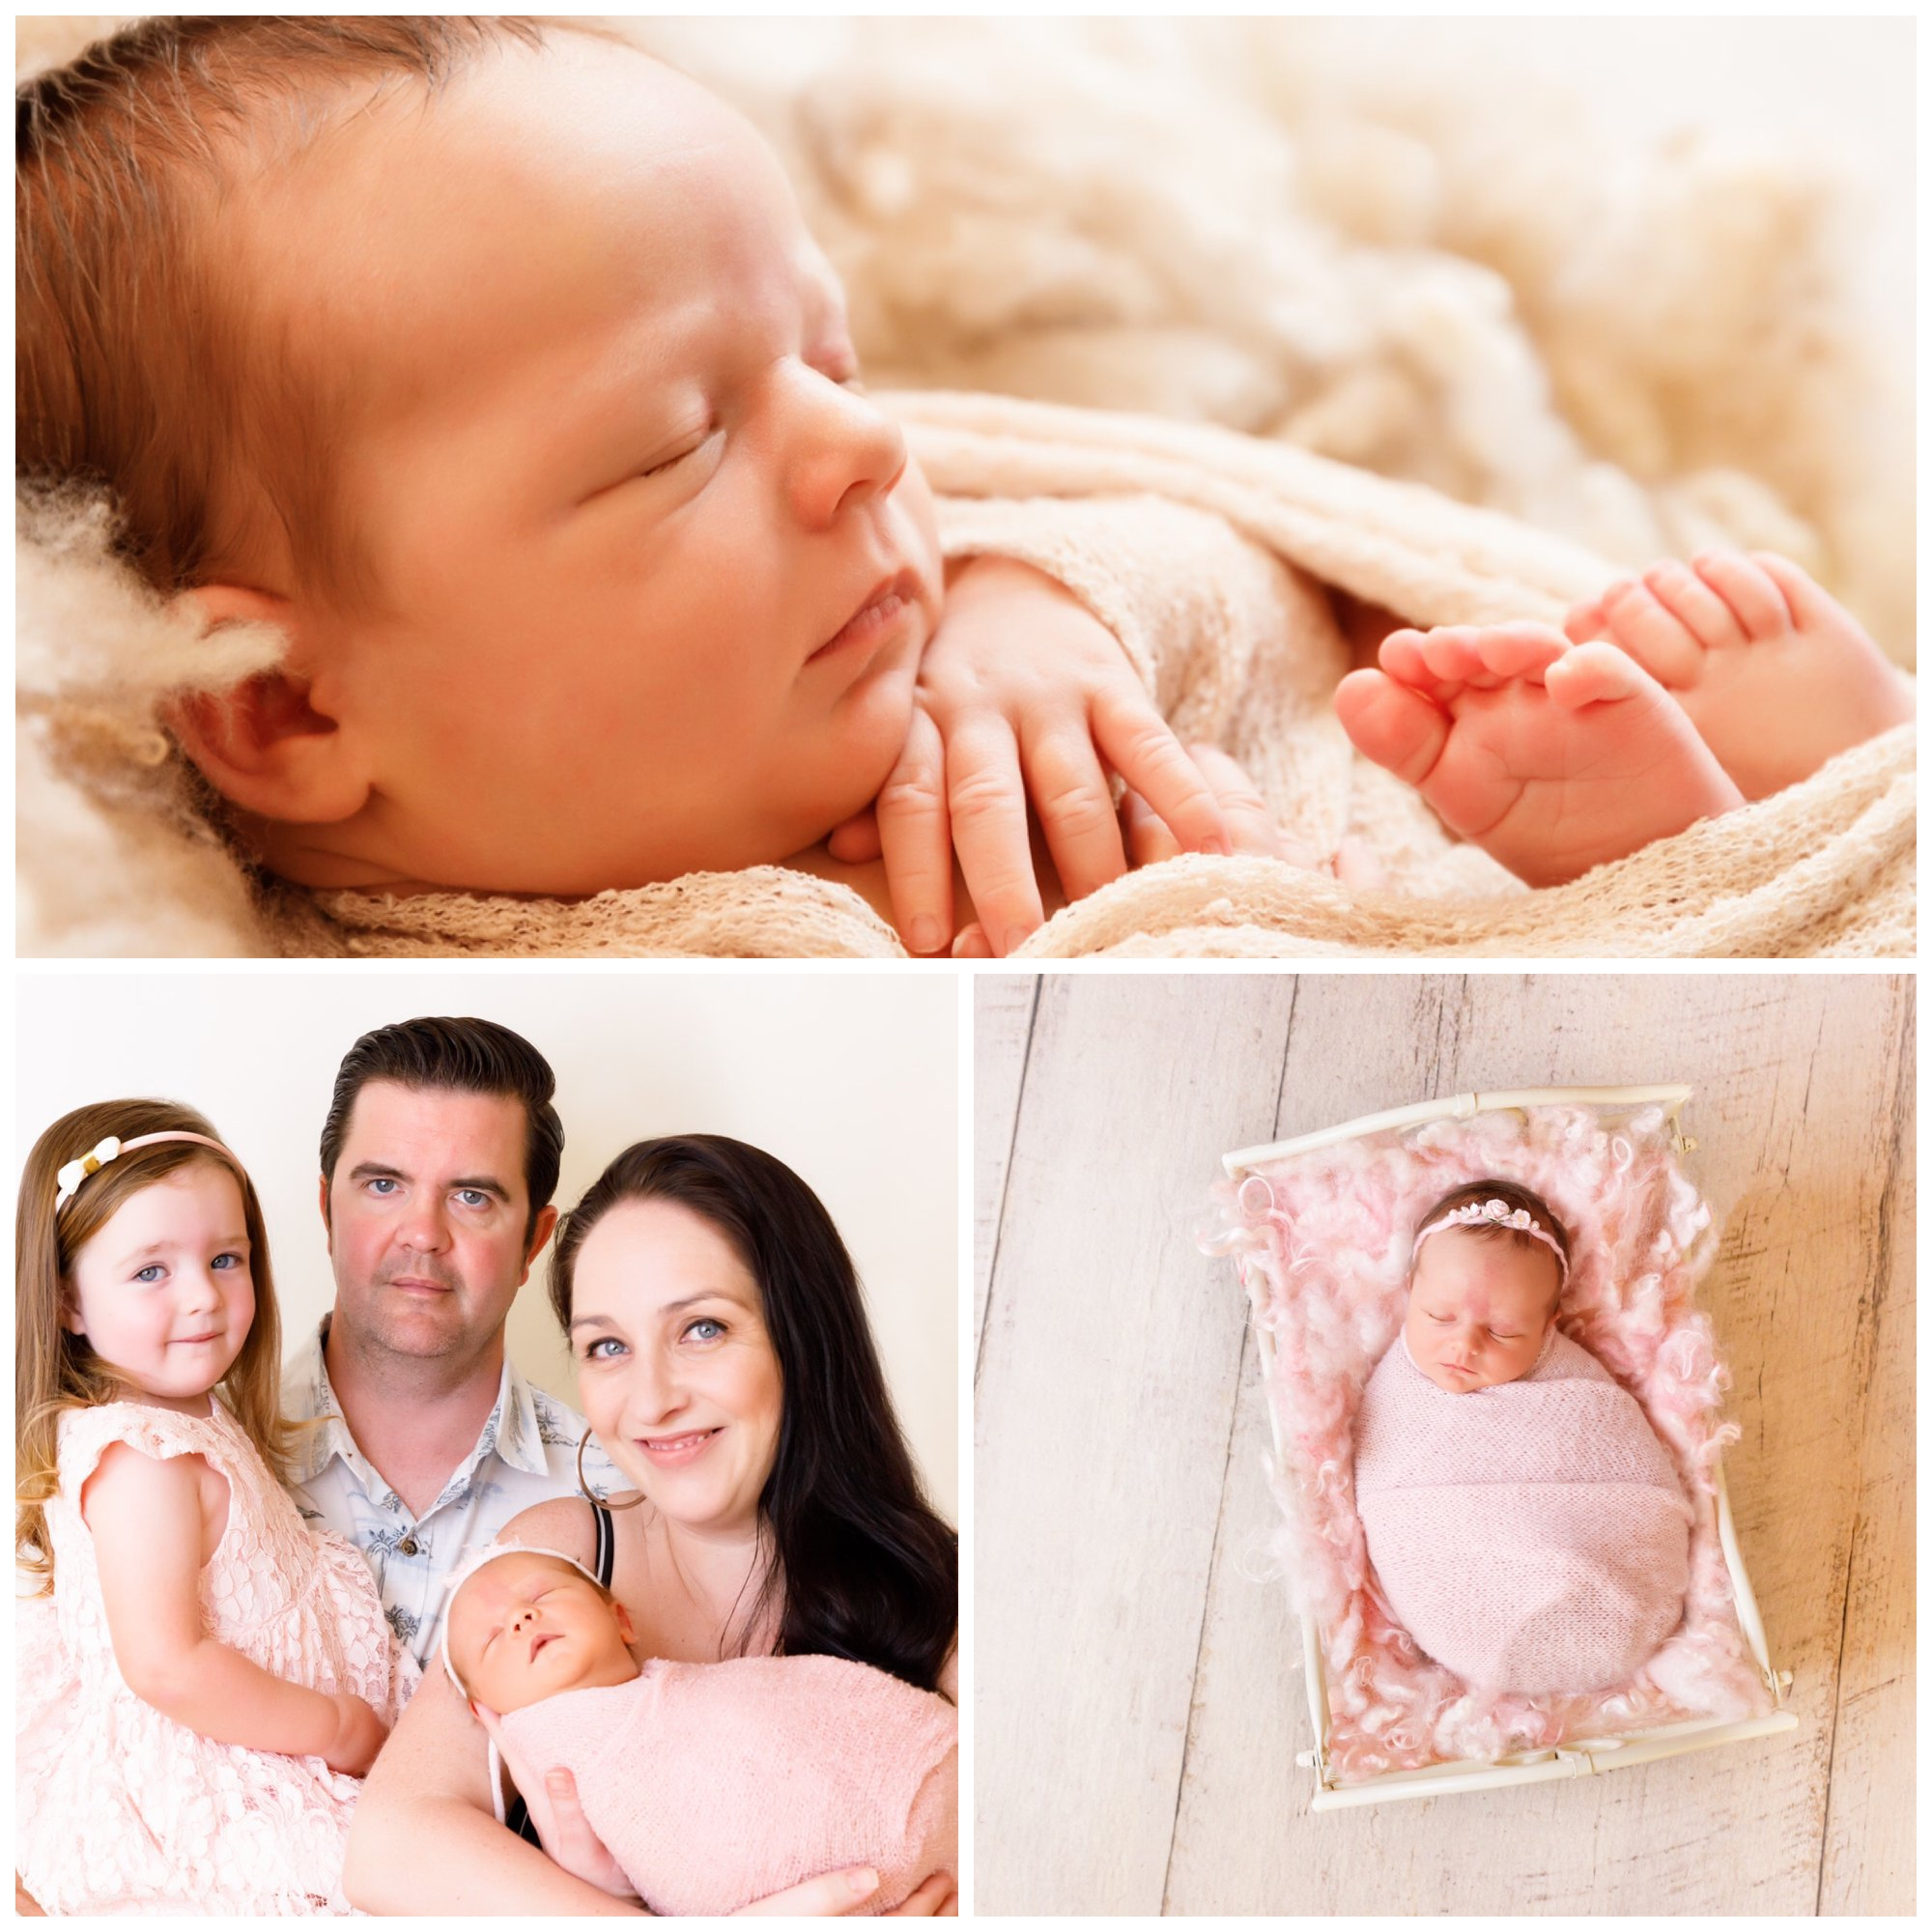 Congratulations to Sonia, Tom and Penelope on beautiful new baby Swift. Mabel ...